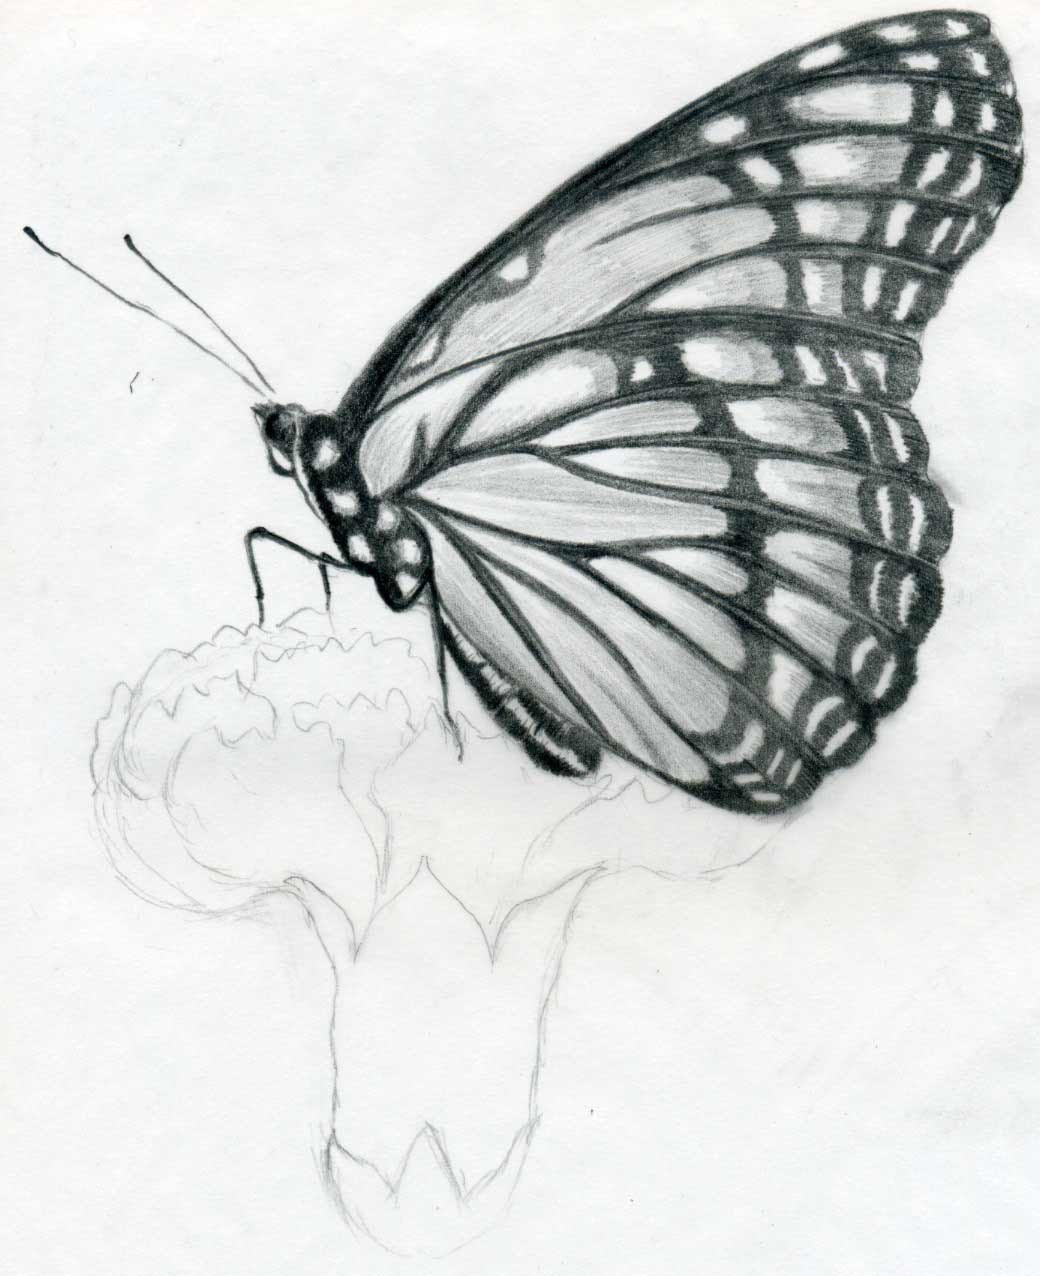 Butterfly Drawings In Pencil Rare Collection Of Free Wallpapers 10 1 10 11 1 10